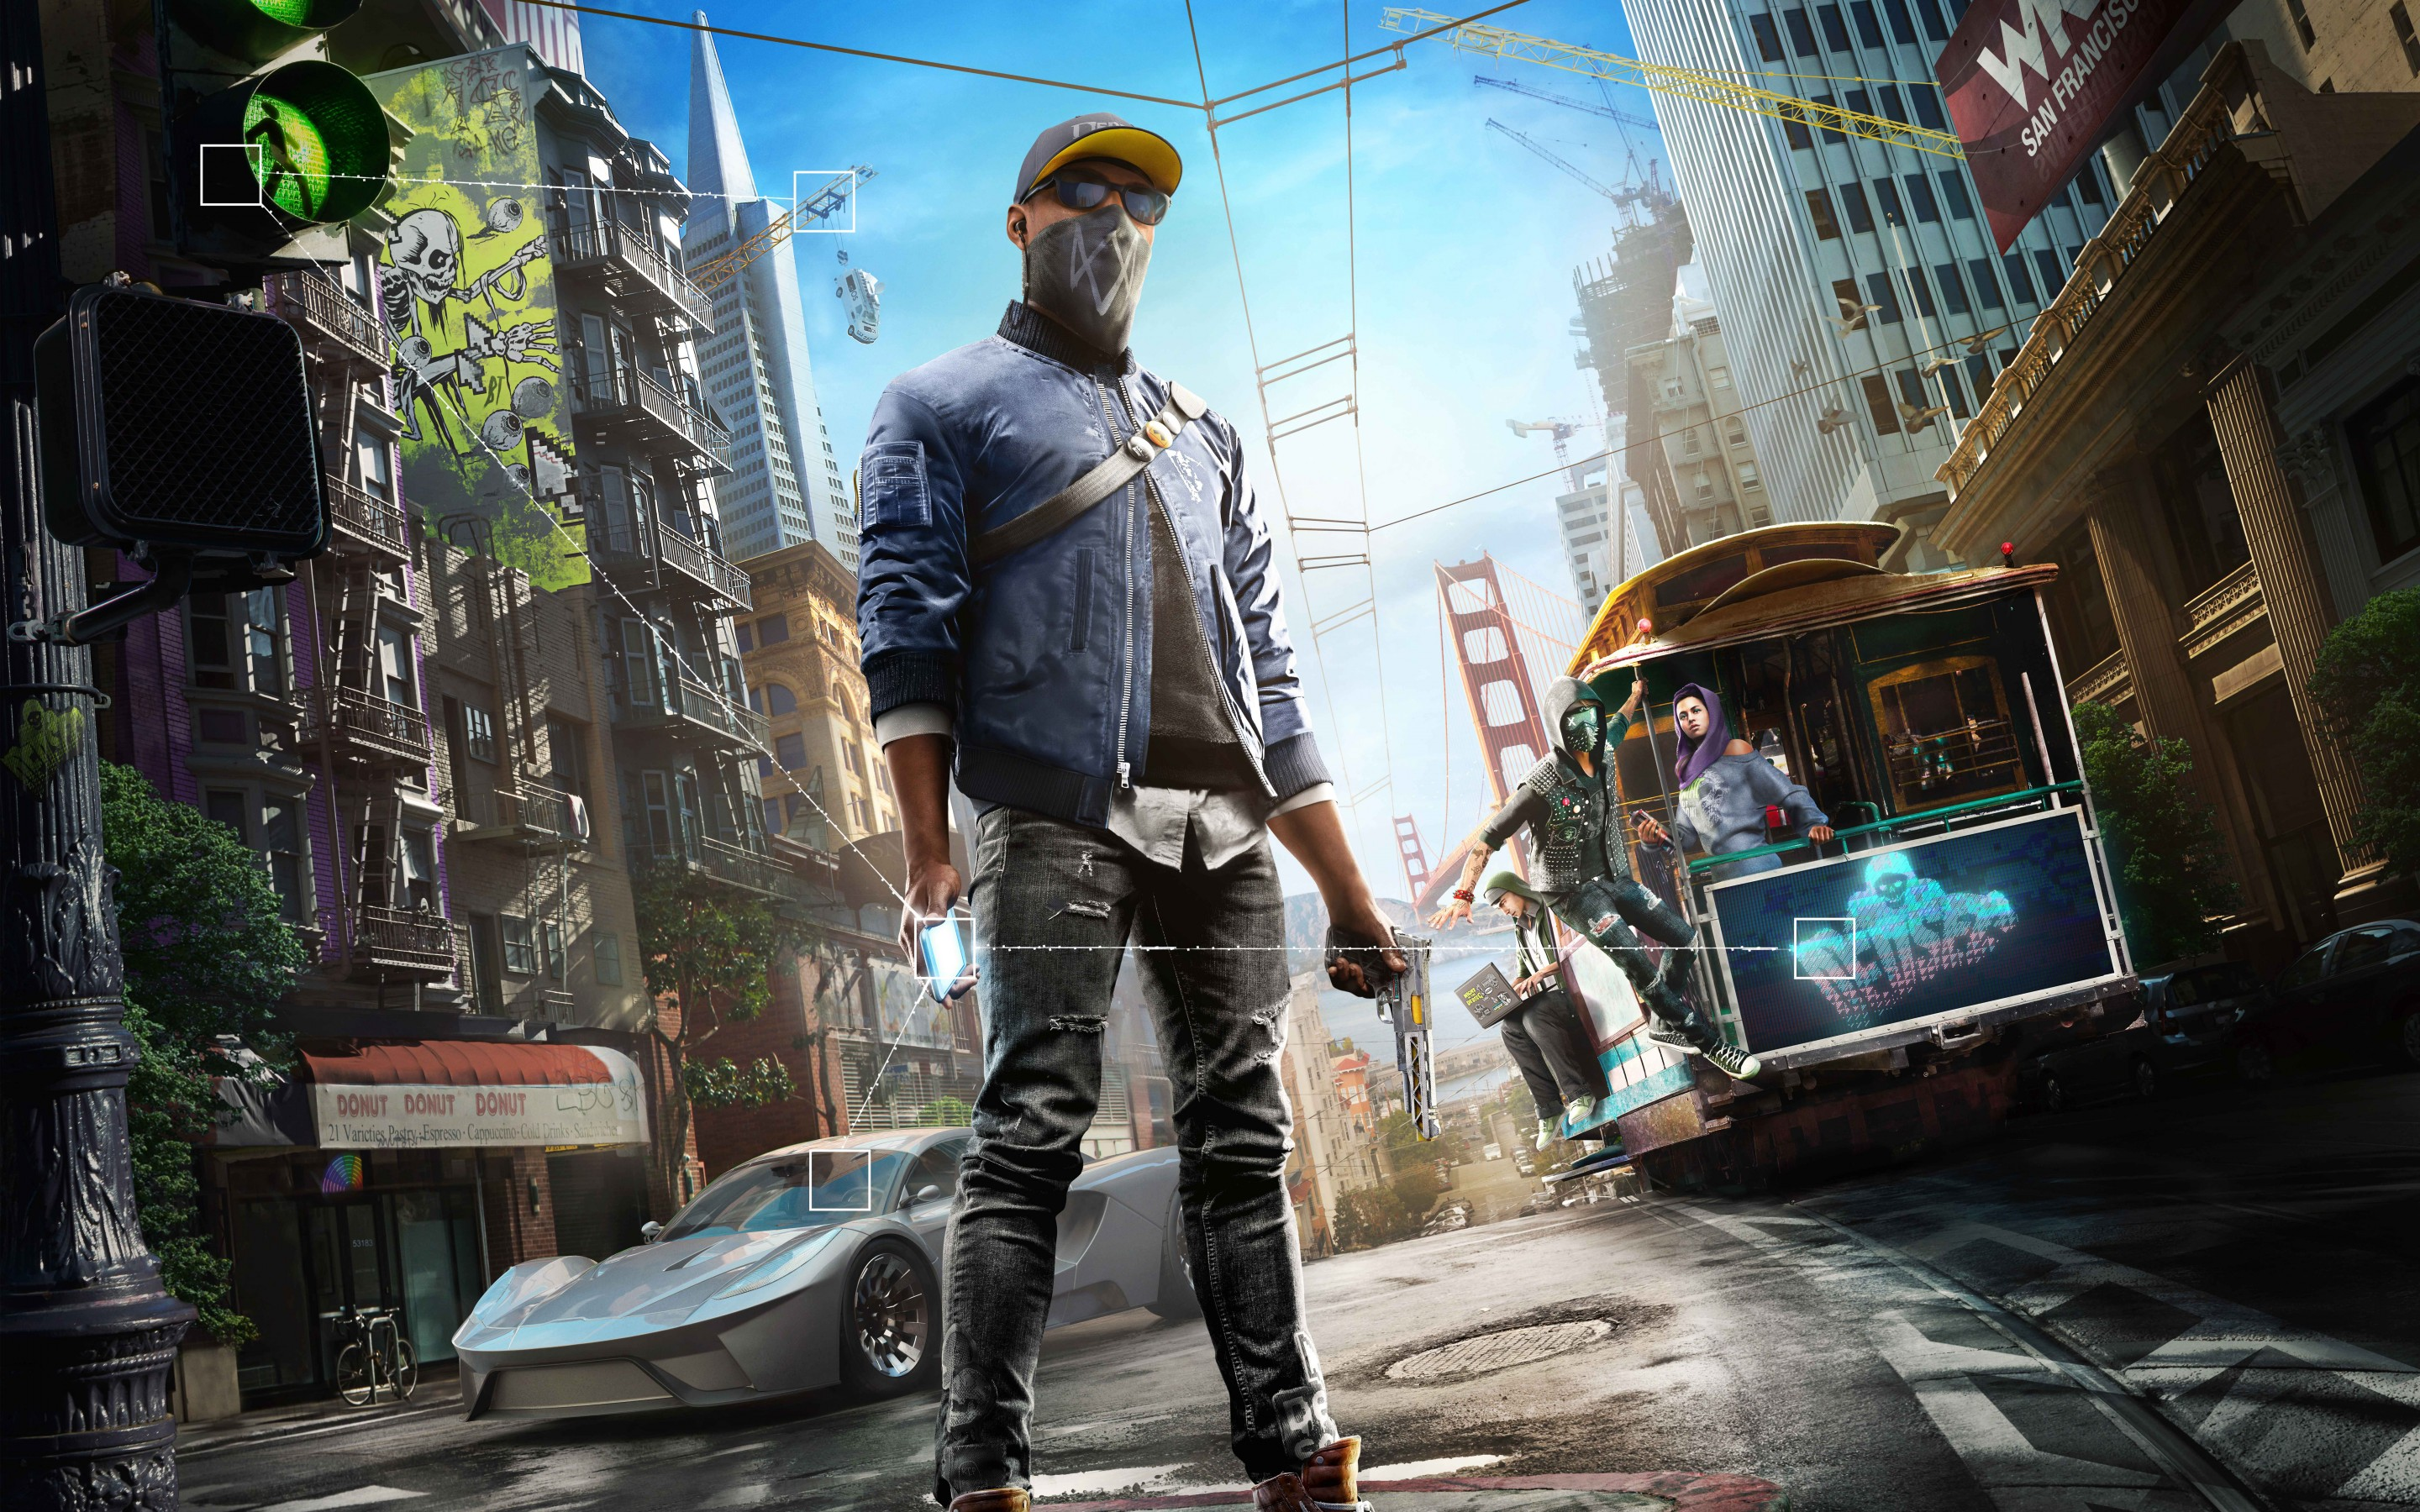 Wallpaper Iphone X Full Hd Watch Dogs 2 Season Pass 4k 8k Wallpapers Hd Wallpapers